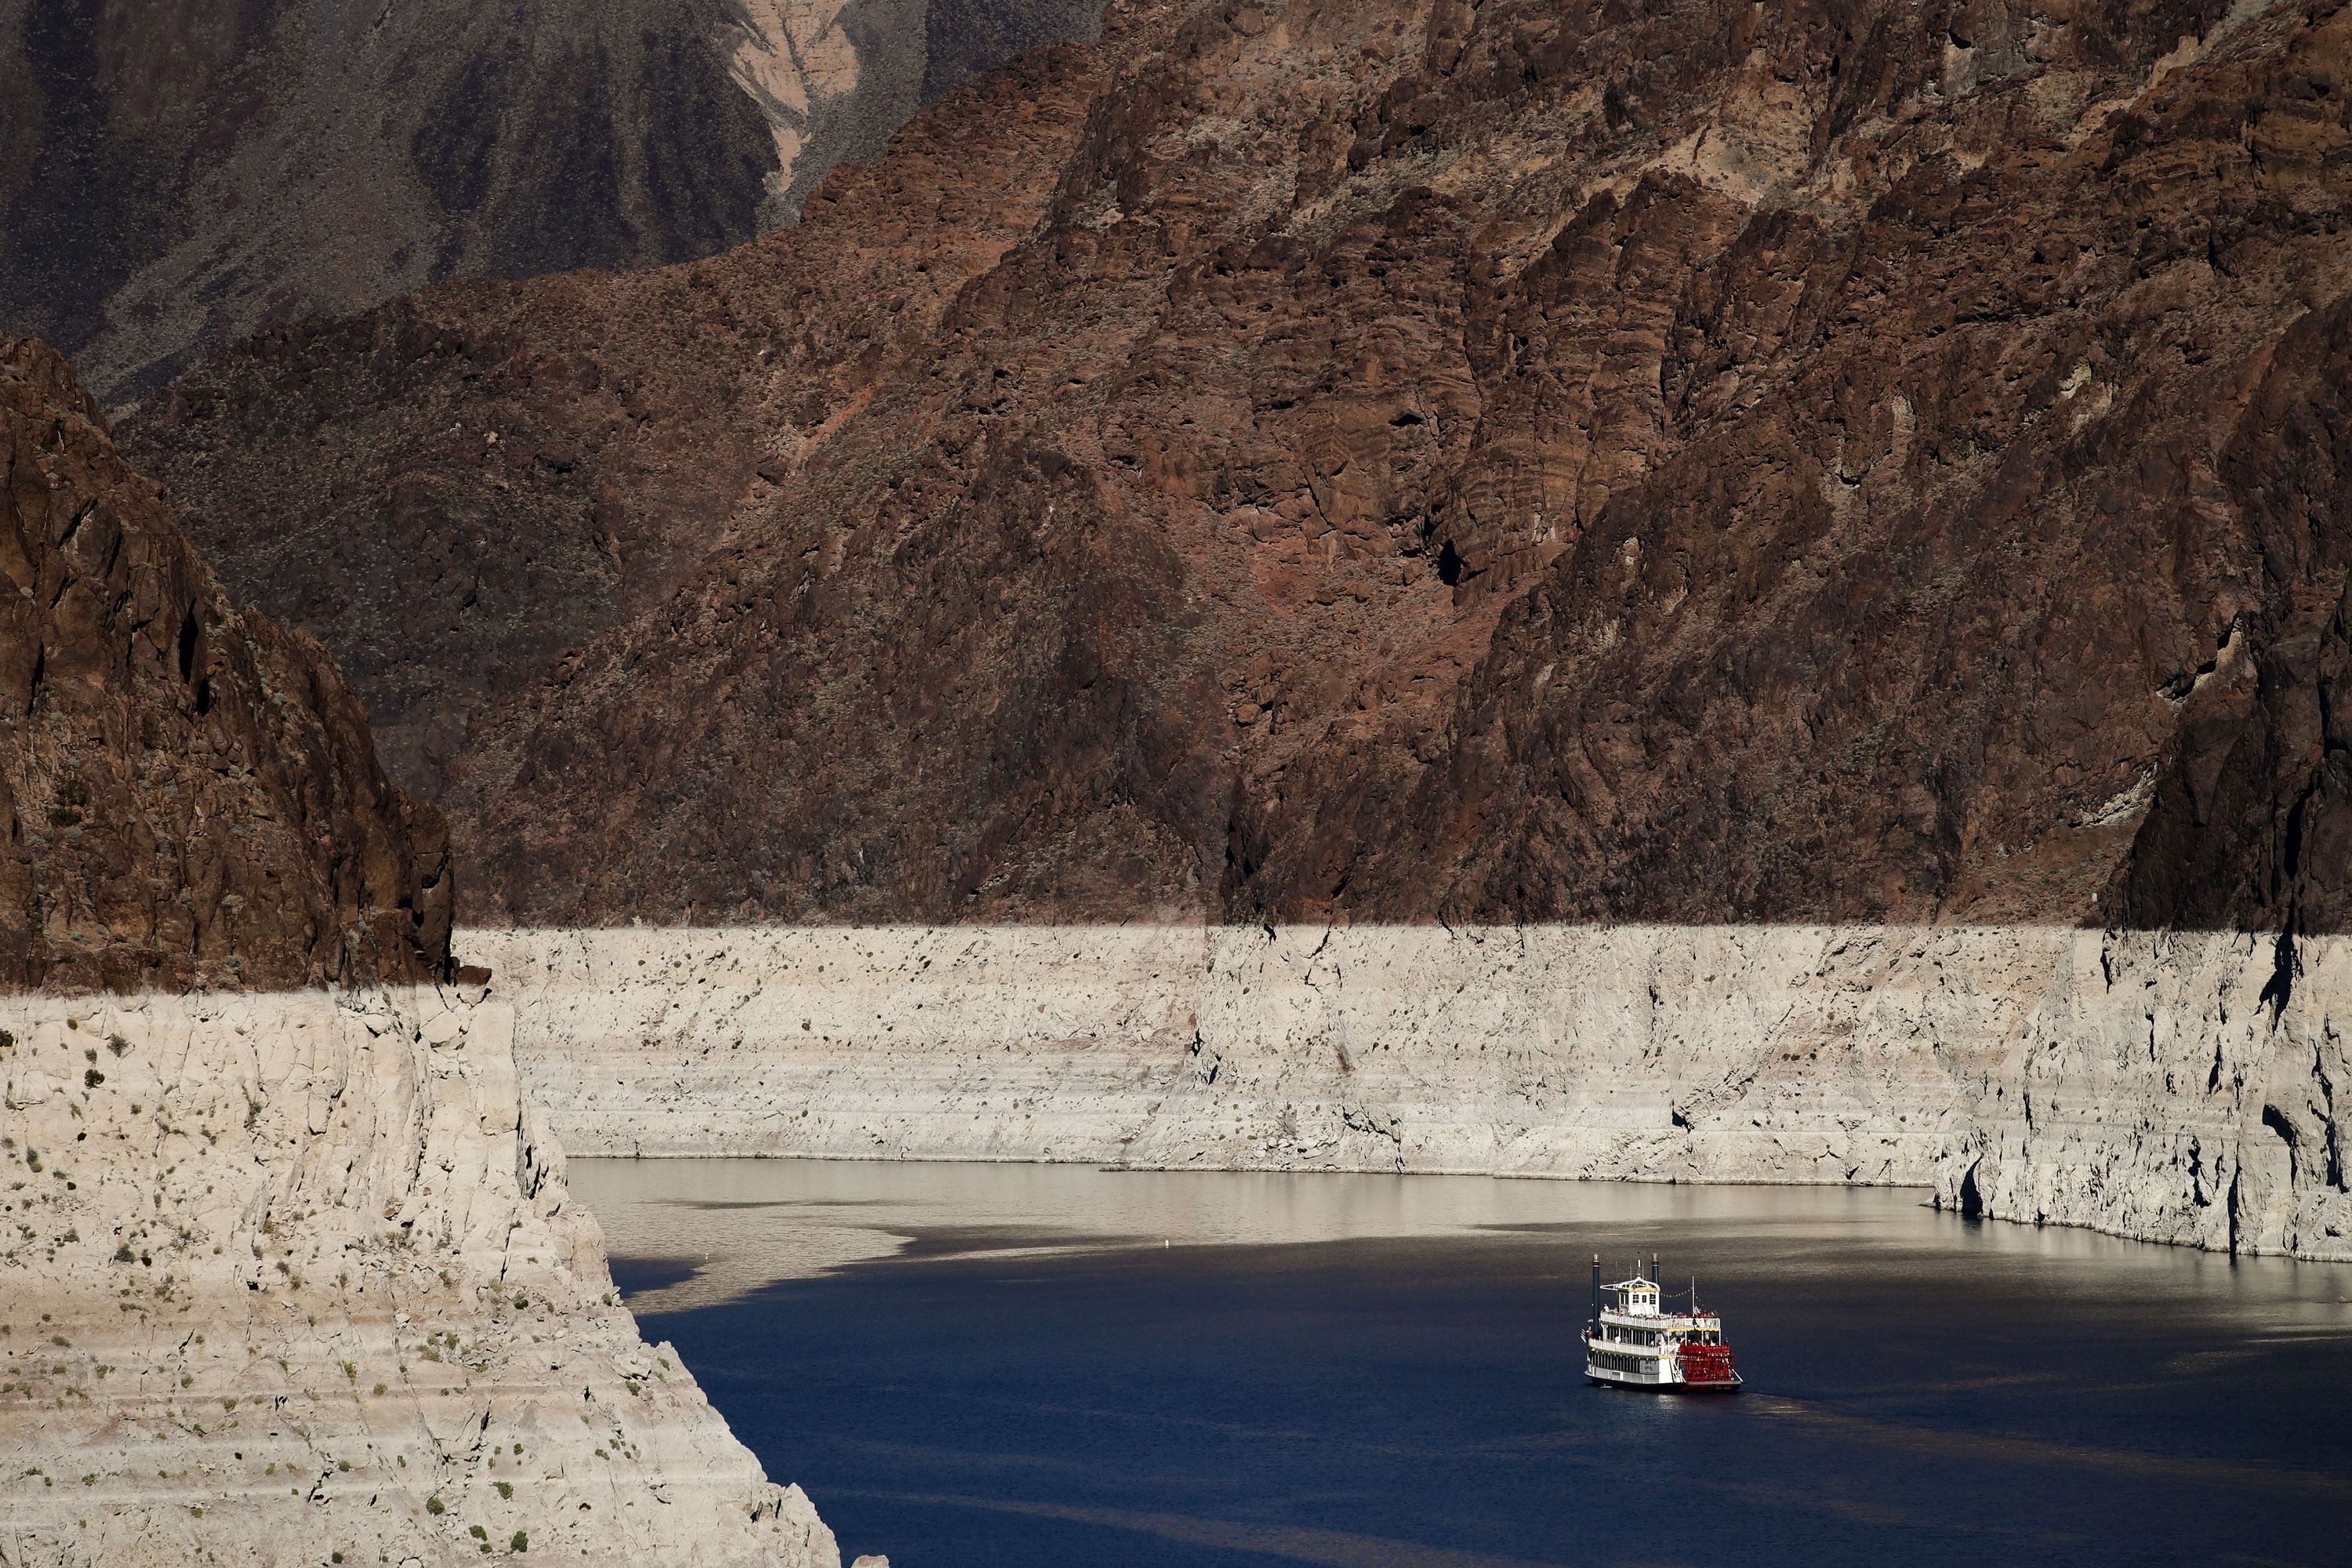 <p>A riverboat glides through Lake Mead on the Colorado River at Hoover Dam near Boulder City, Nev., in this photo from October 2015.</p>